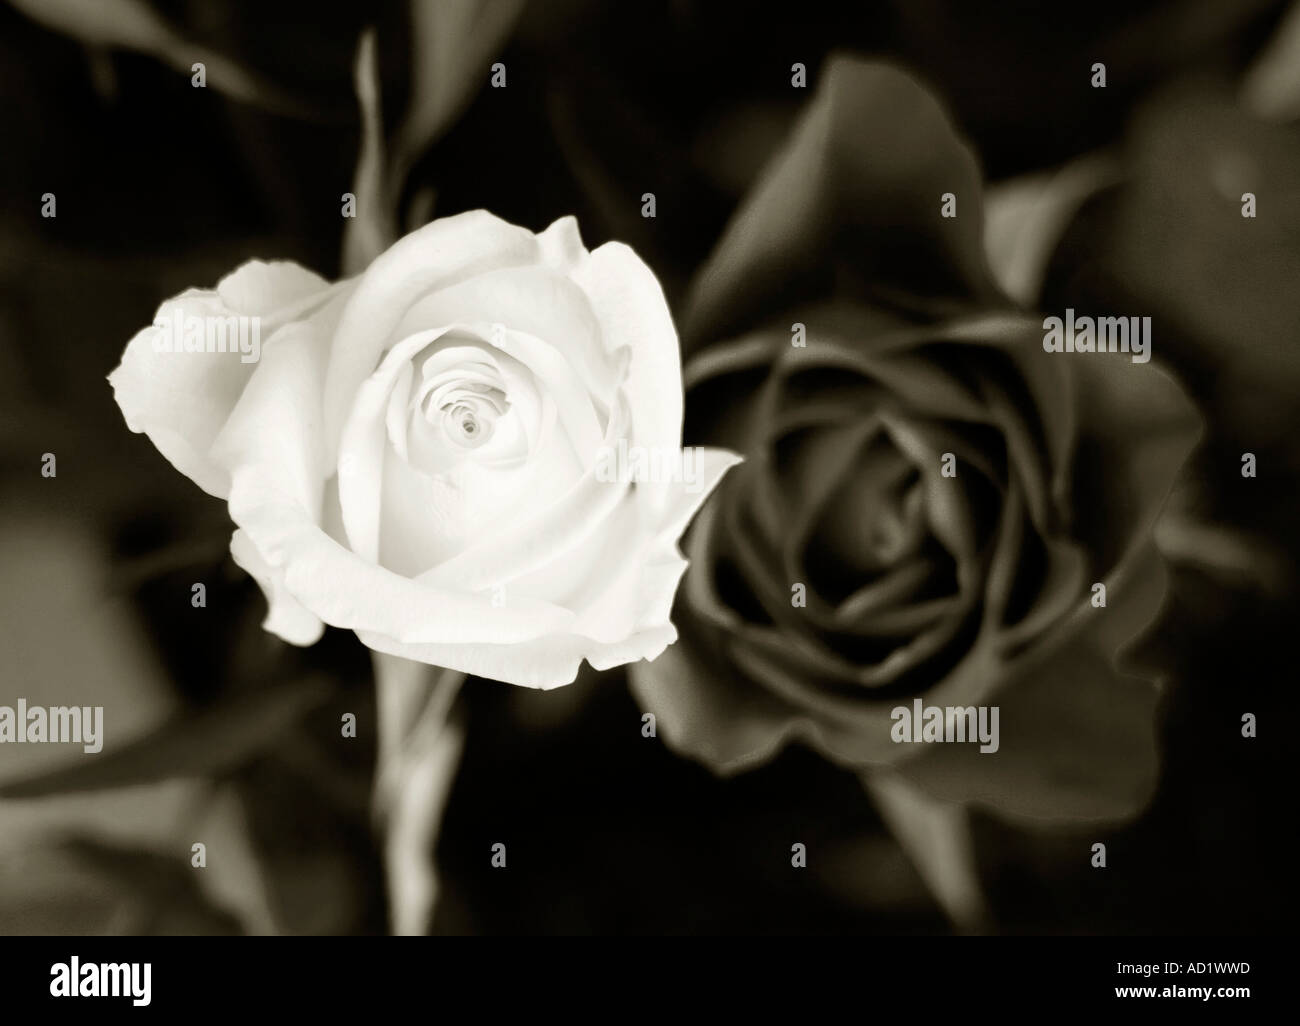 387181ca6 black and white image of two roses Stock Photo: 7586908 - Alamy